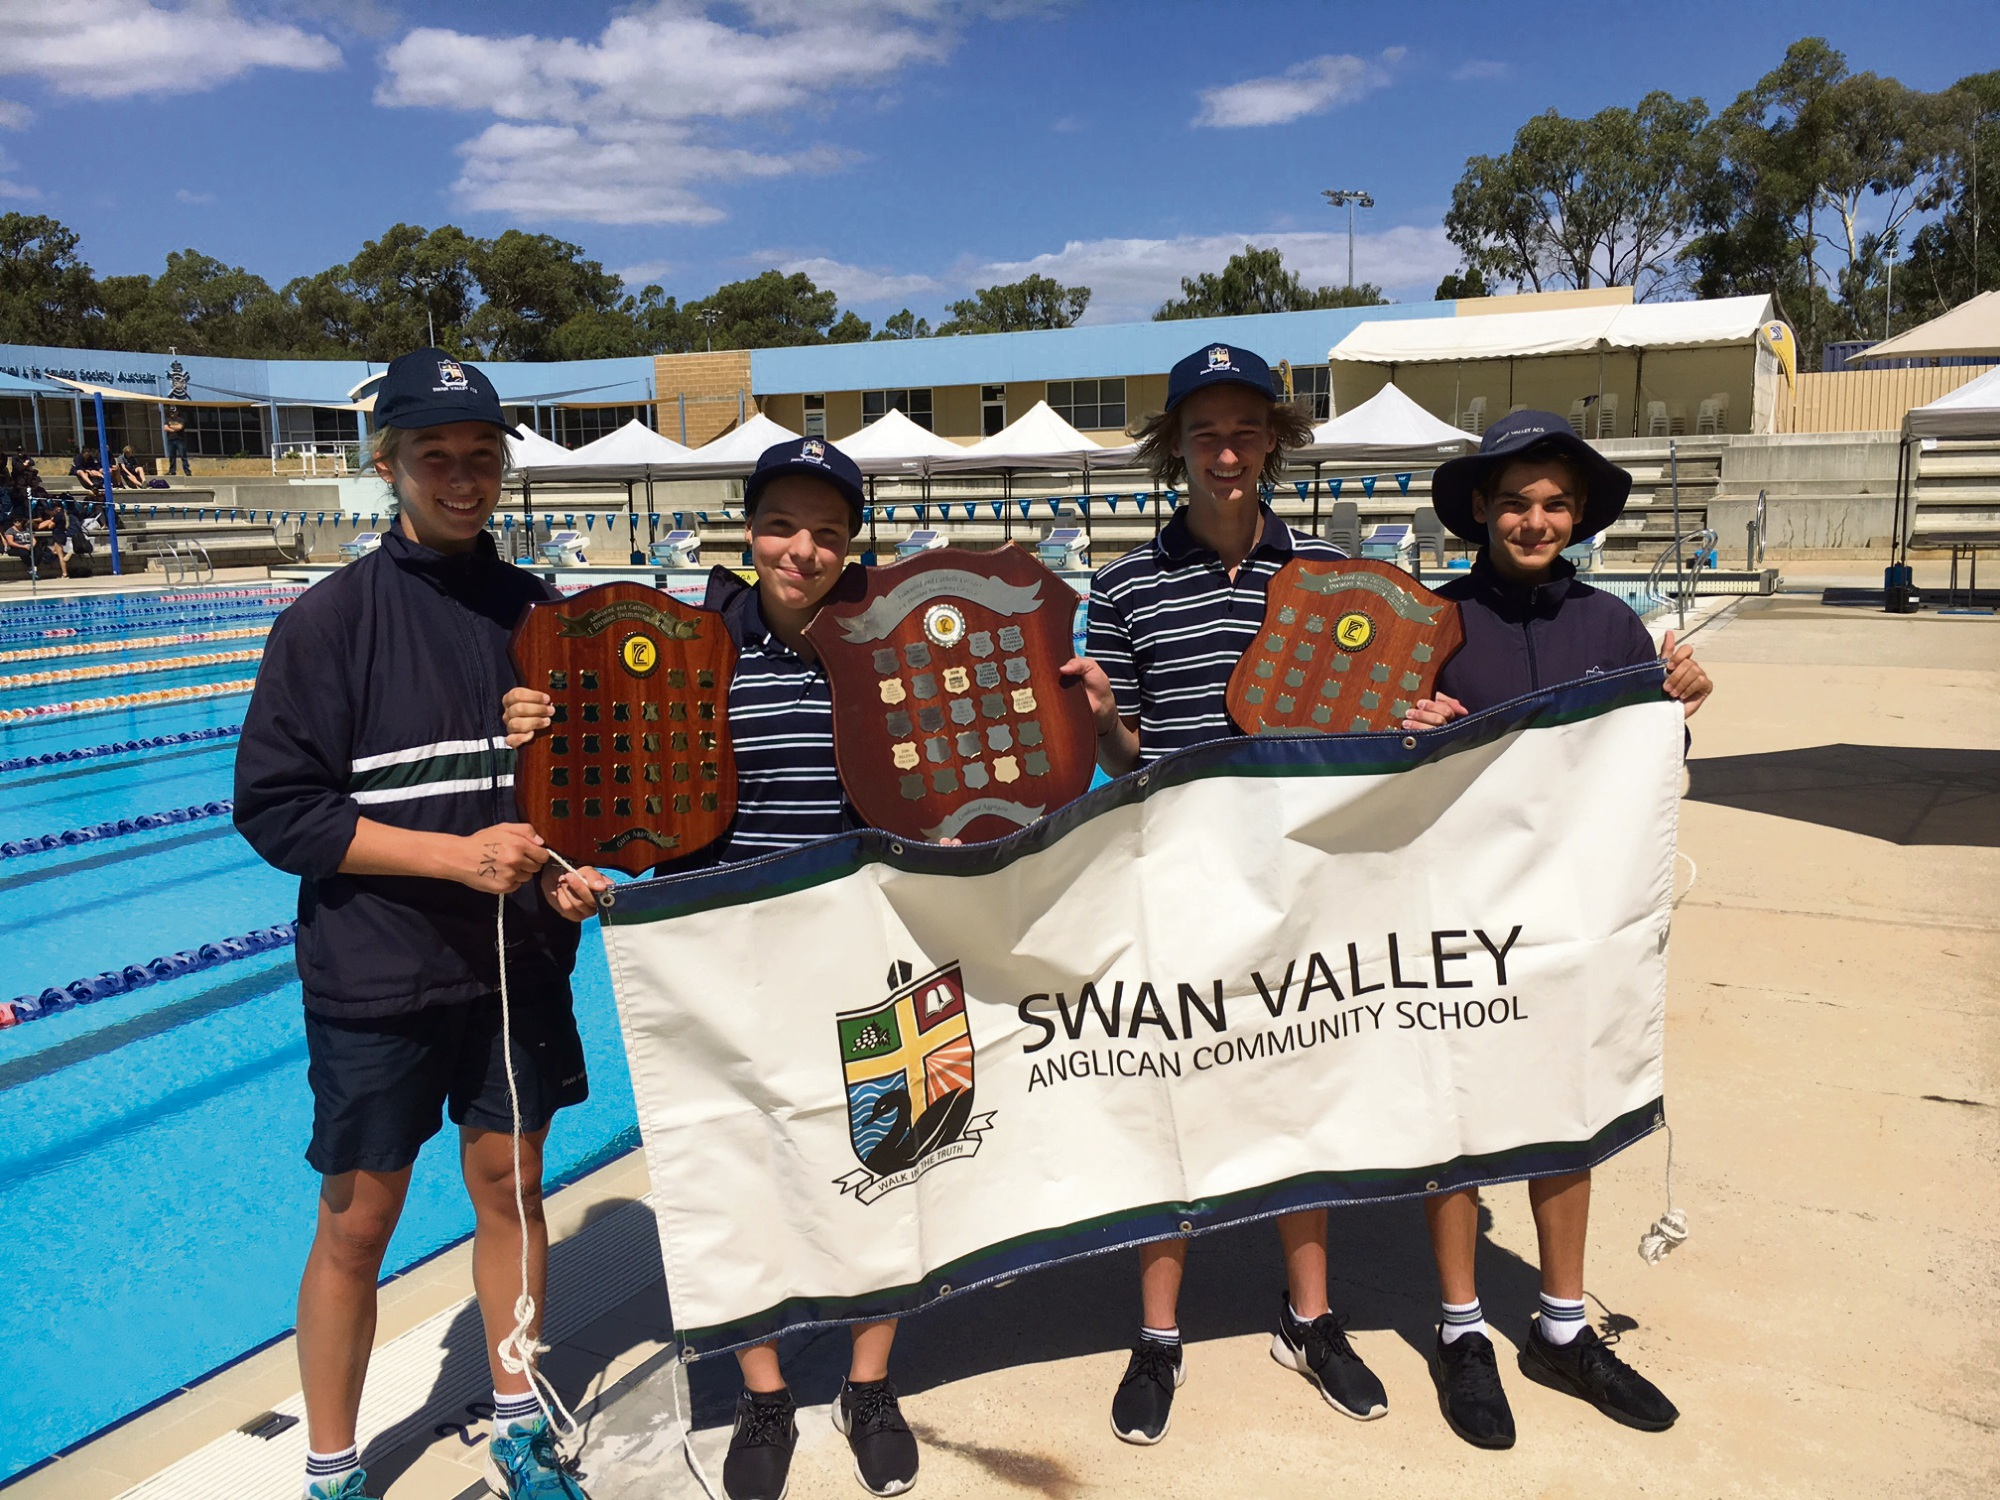 Swan Valley Anglican Community School students Anneka West, Alexia Pavlovic, Zane Pendreigh and Andre Pavlovic celebrate their win.